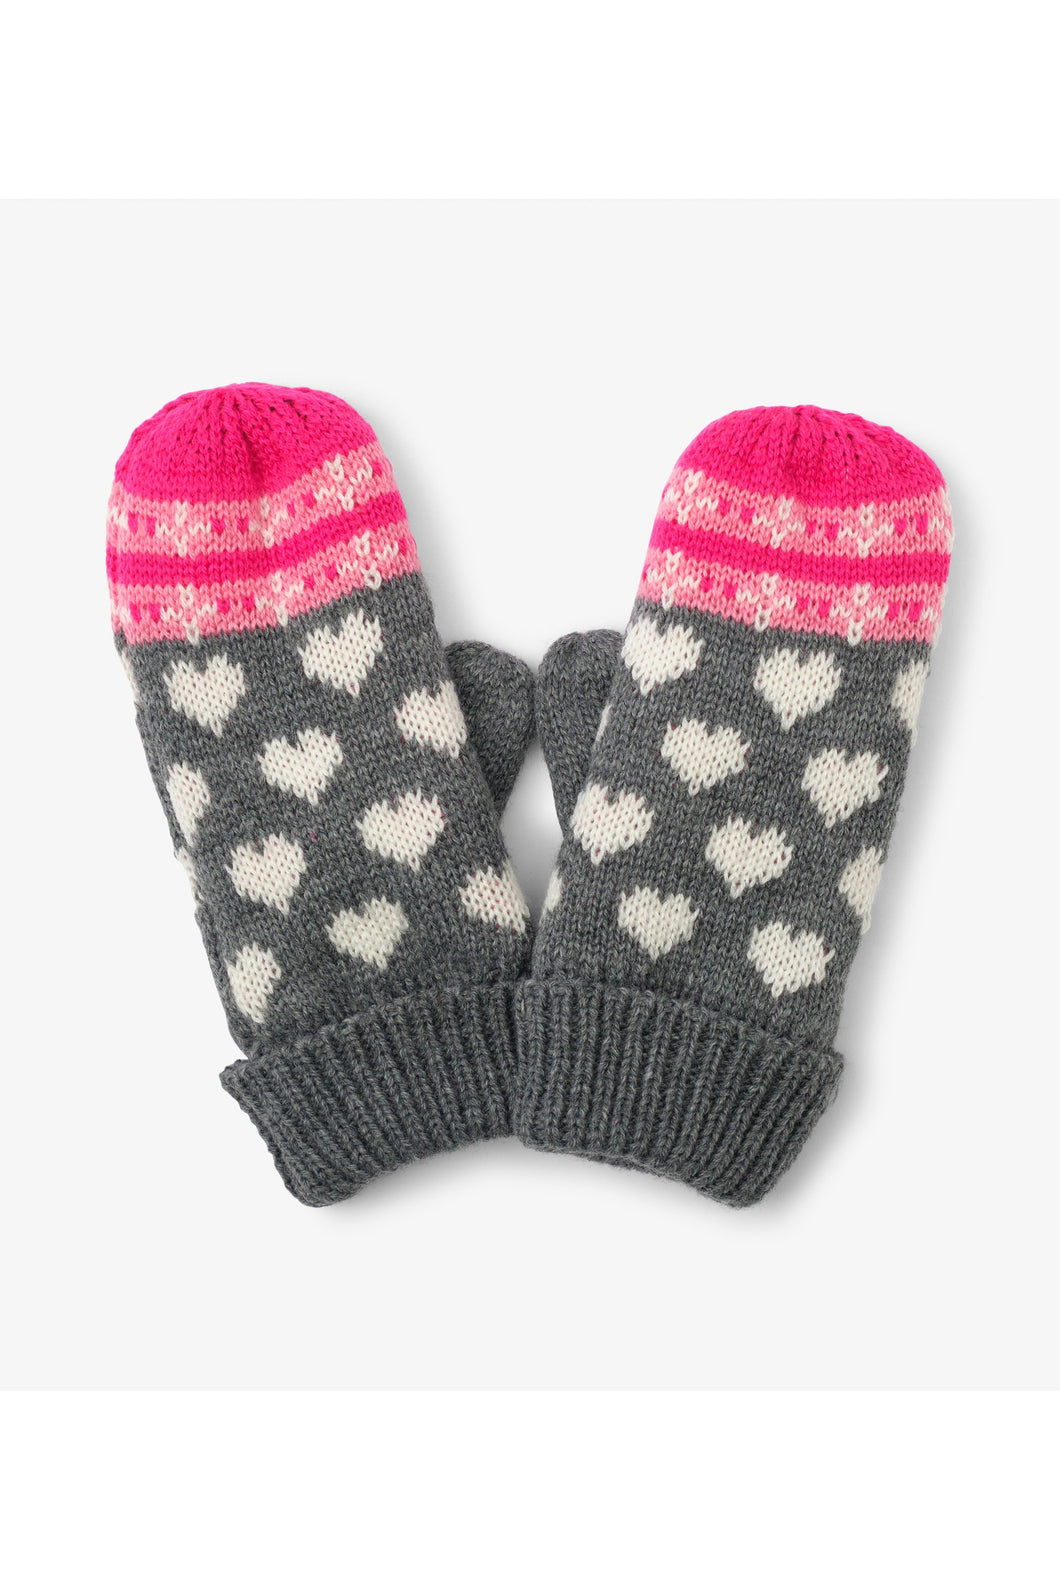 WINTER HEARTS MITTEN